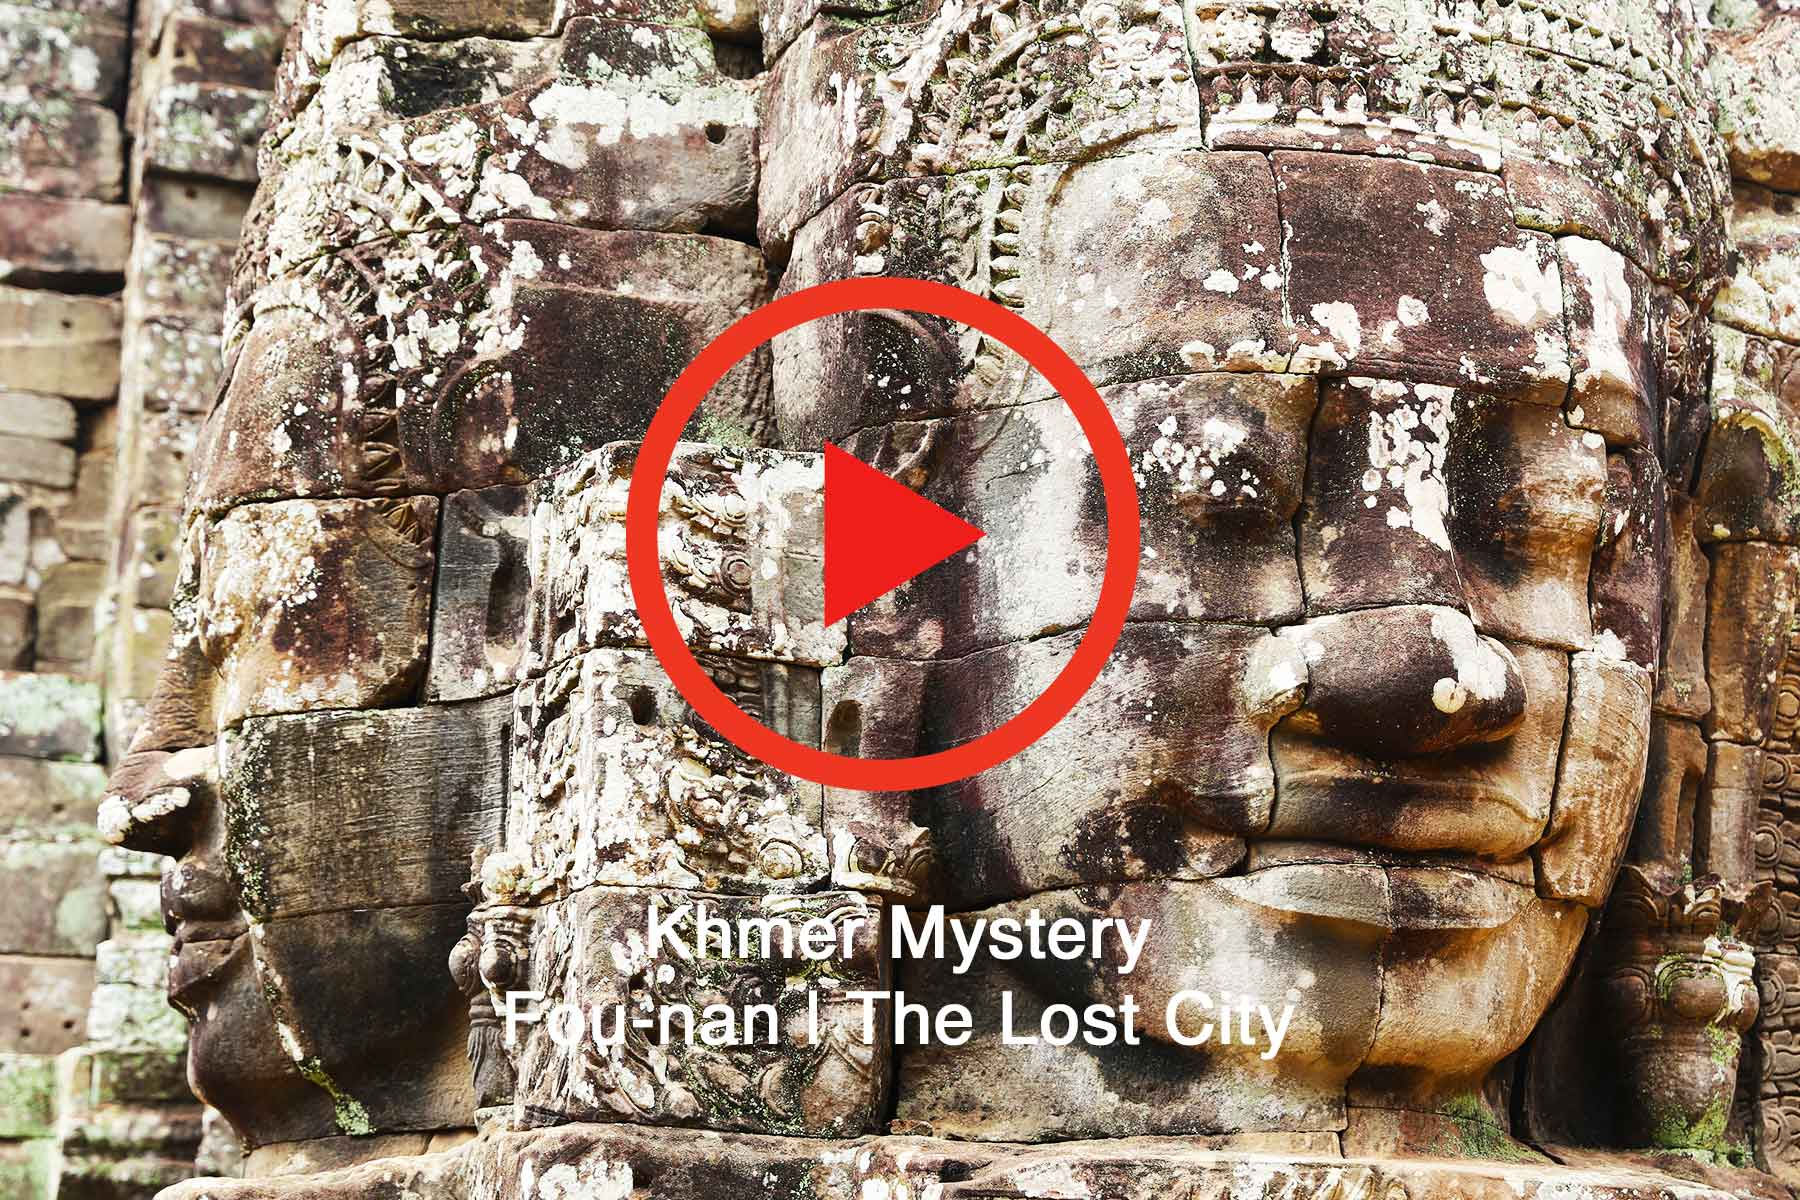 Khmer Mystery Fou-nan Lost City Video - funan - Charles Higham - Cambodia Research - Steven A Martin